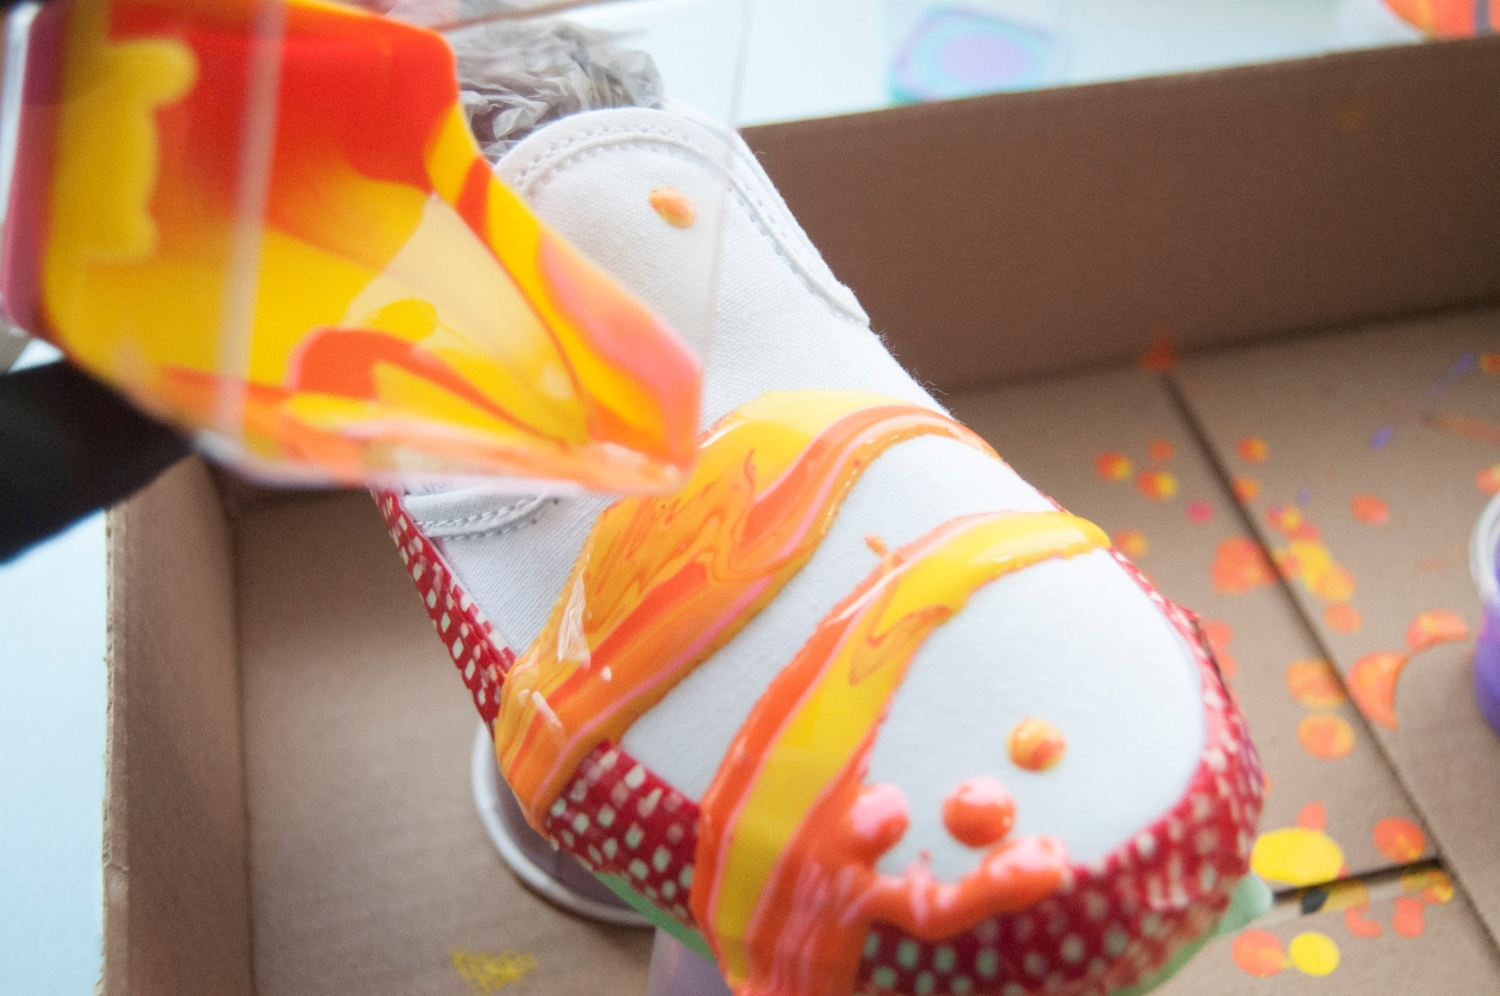 Place shoes in box and begin paint pouring